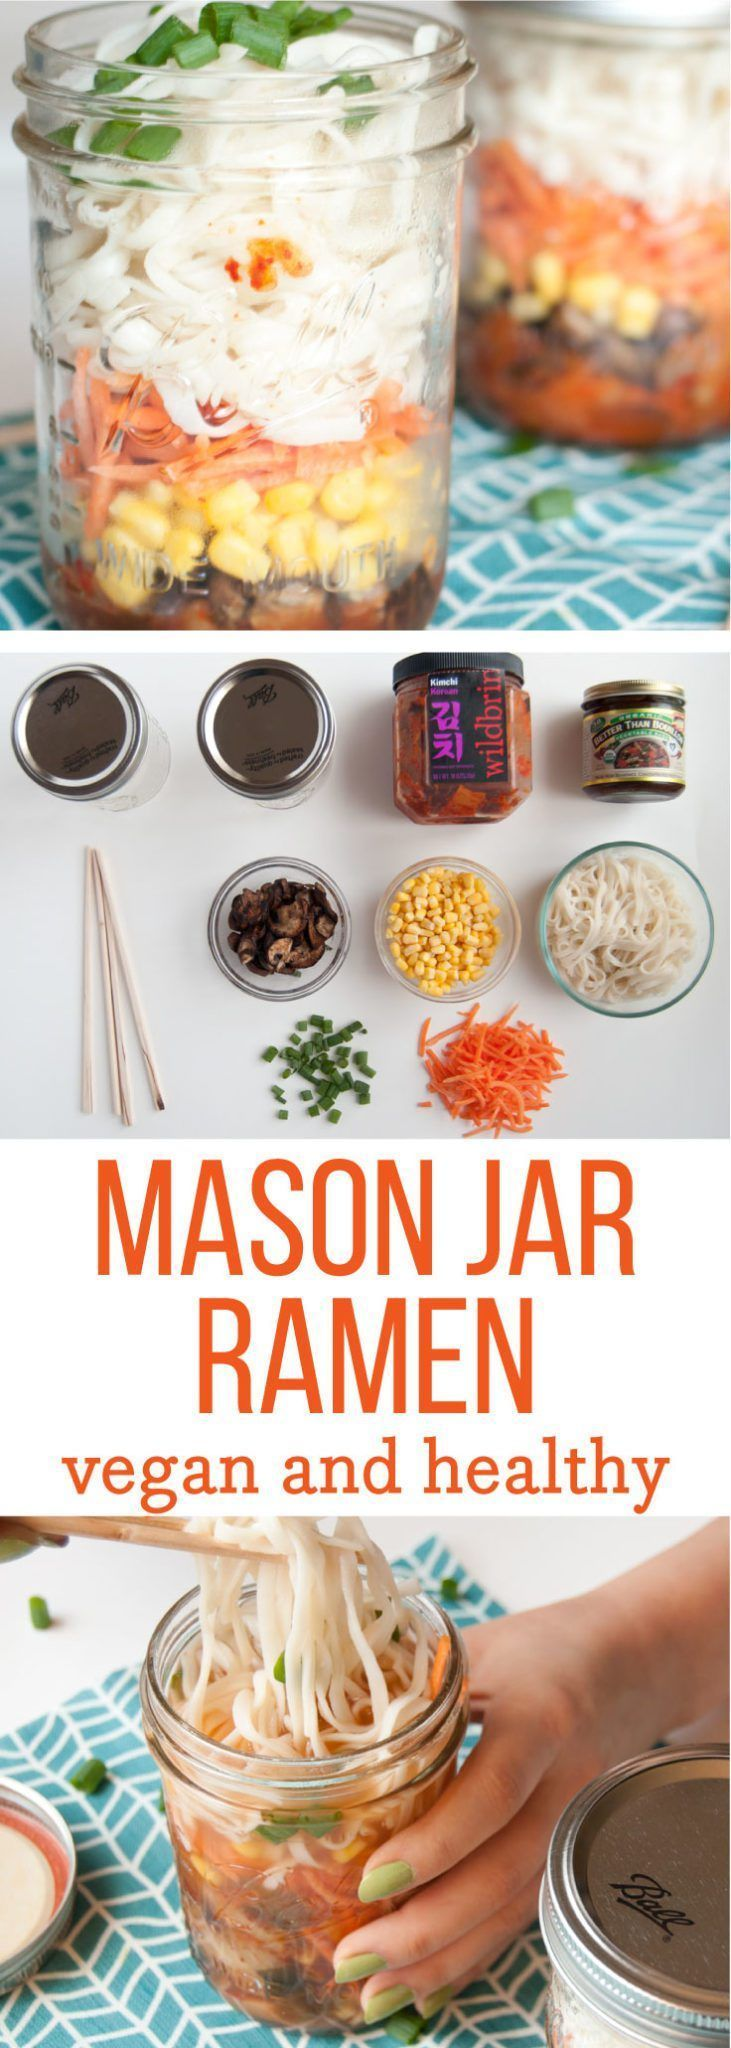 Jar Ramen -- This vegan ramen recipe is perfect for lunch on the go. The toppings and flavors are endless; allowing you to get real creative with your meal! Add tons of vegetables for a healthy lunch option you can take to work with you. - mindfulavocado